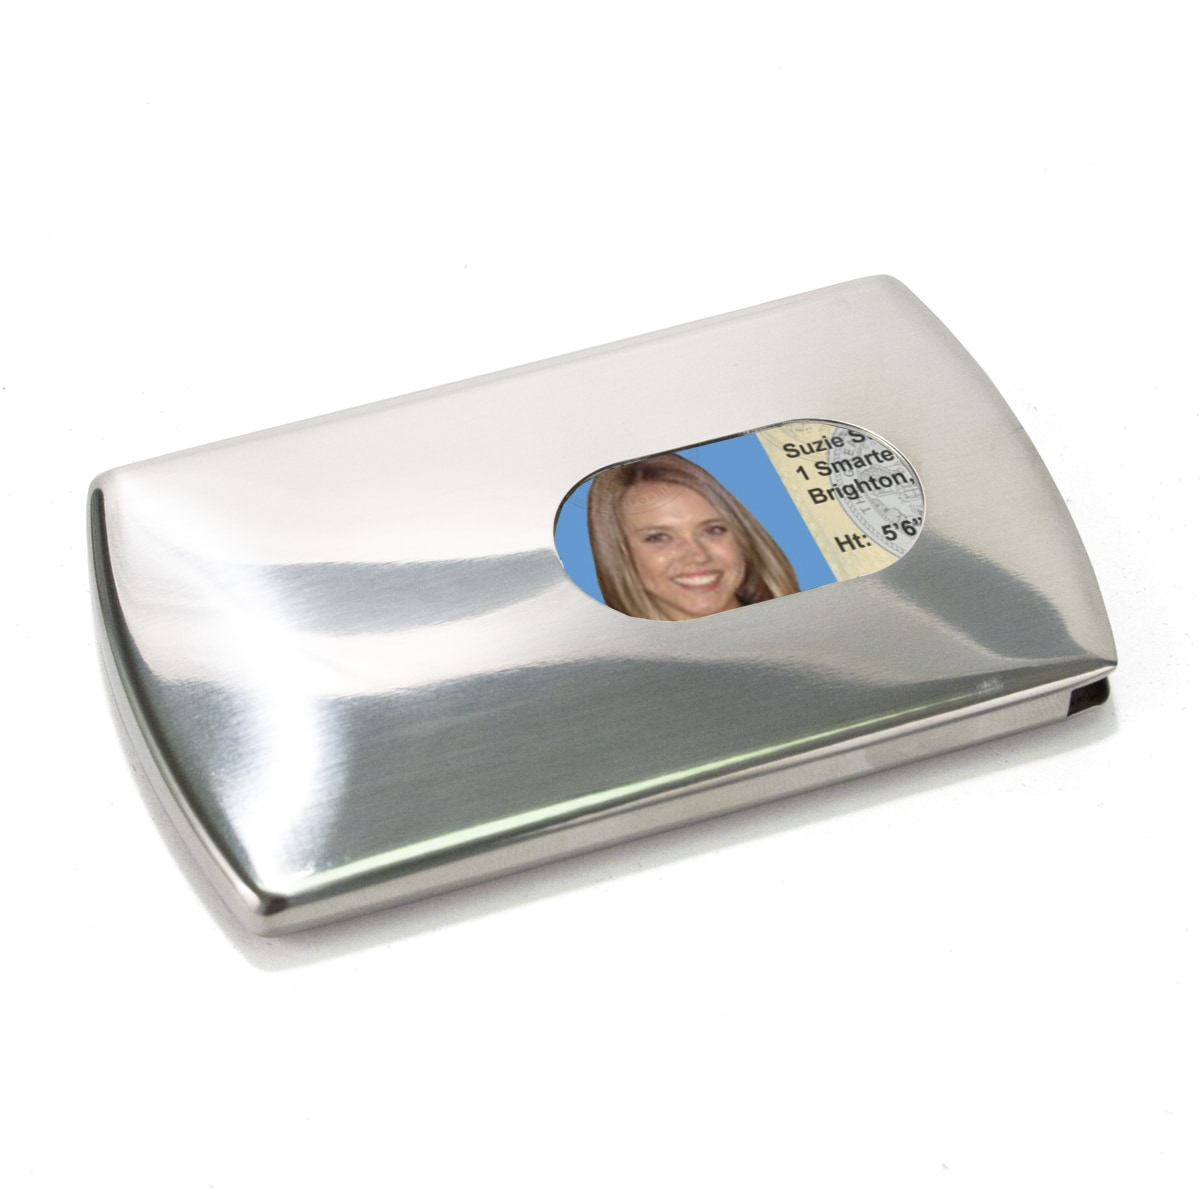 Storus Multipurpose Stainless Steel Business Card and Smart Card Case